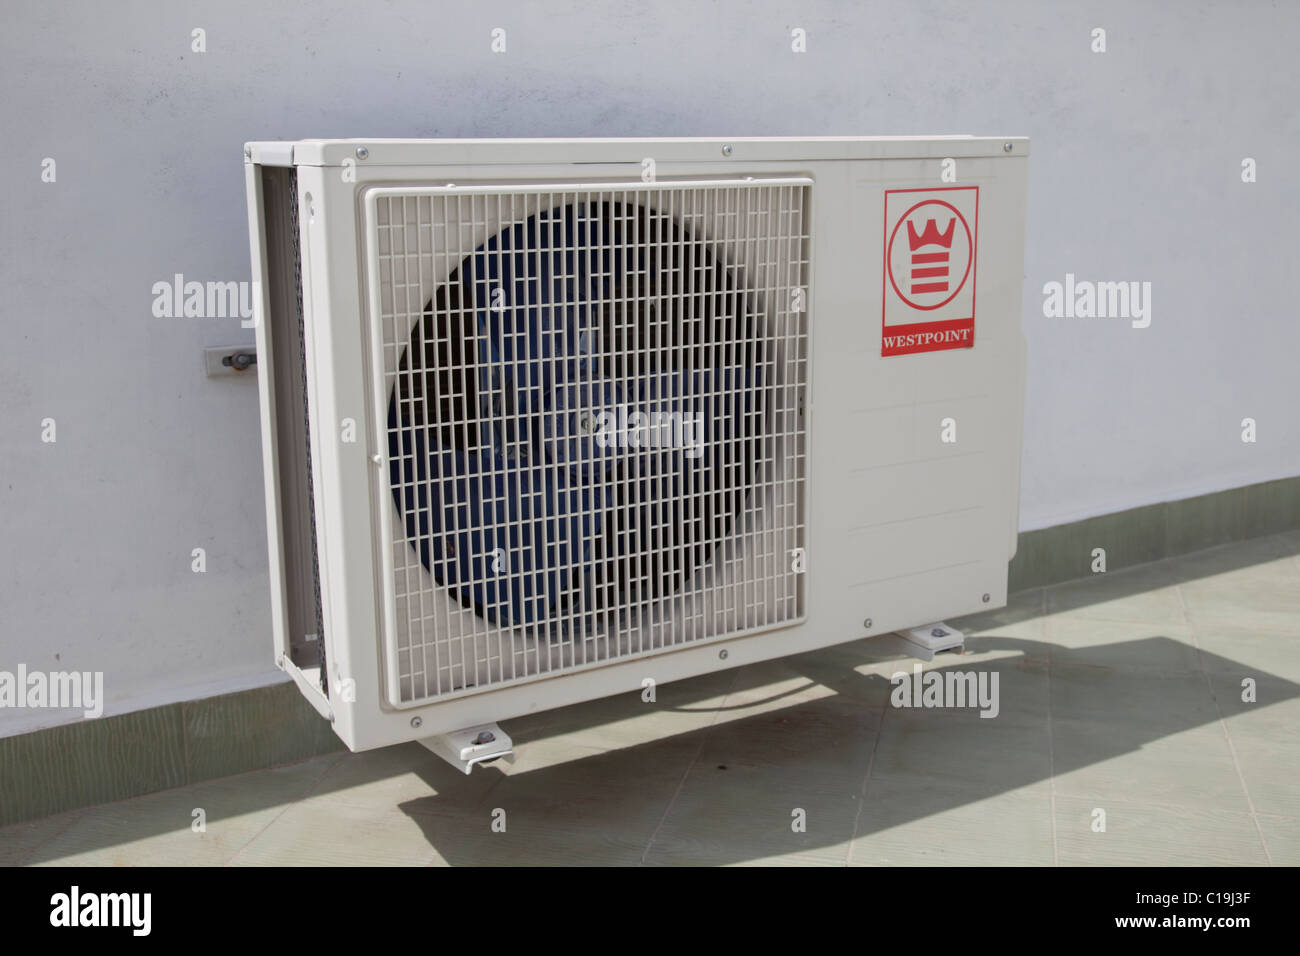 Westpoint Air Conditioner Unit Mounted On Roof Of House